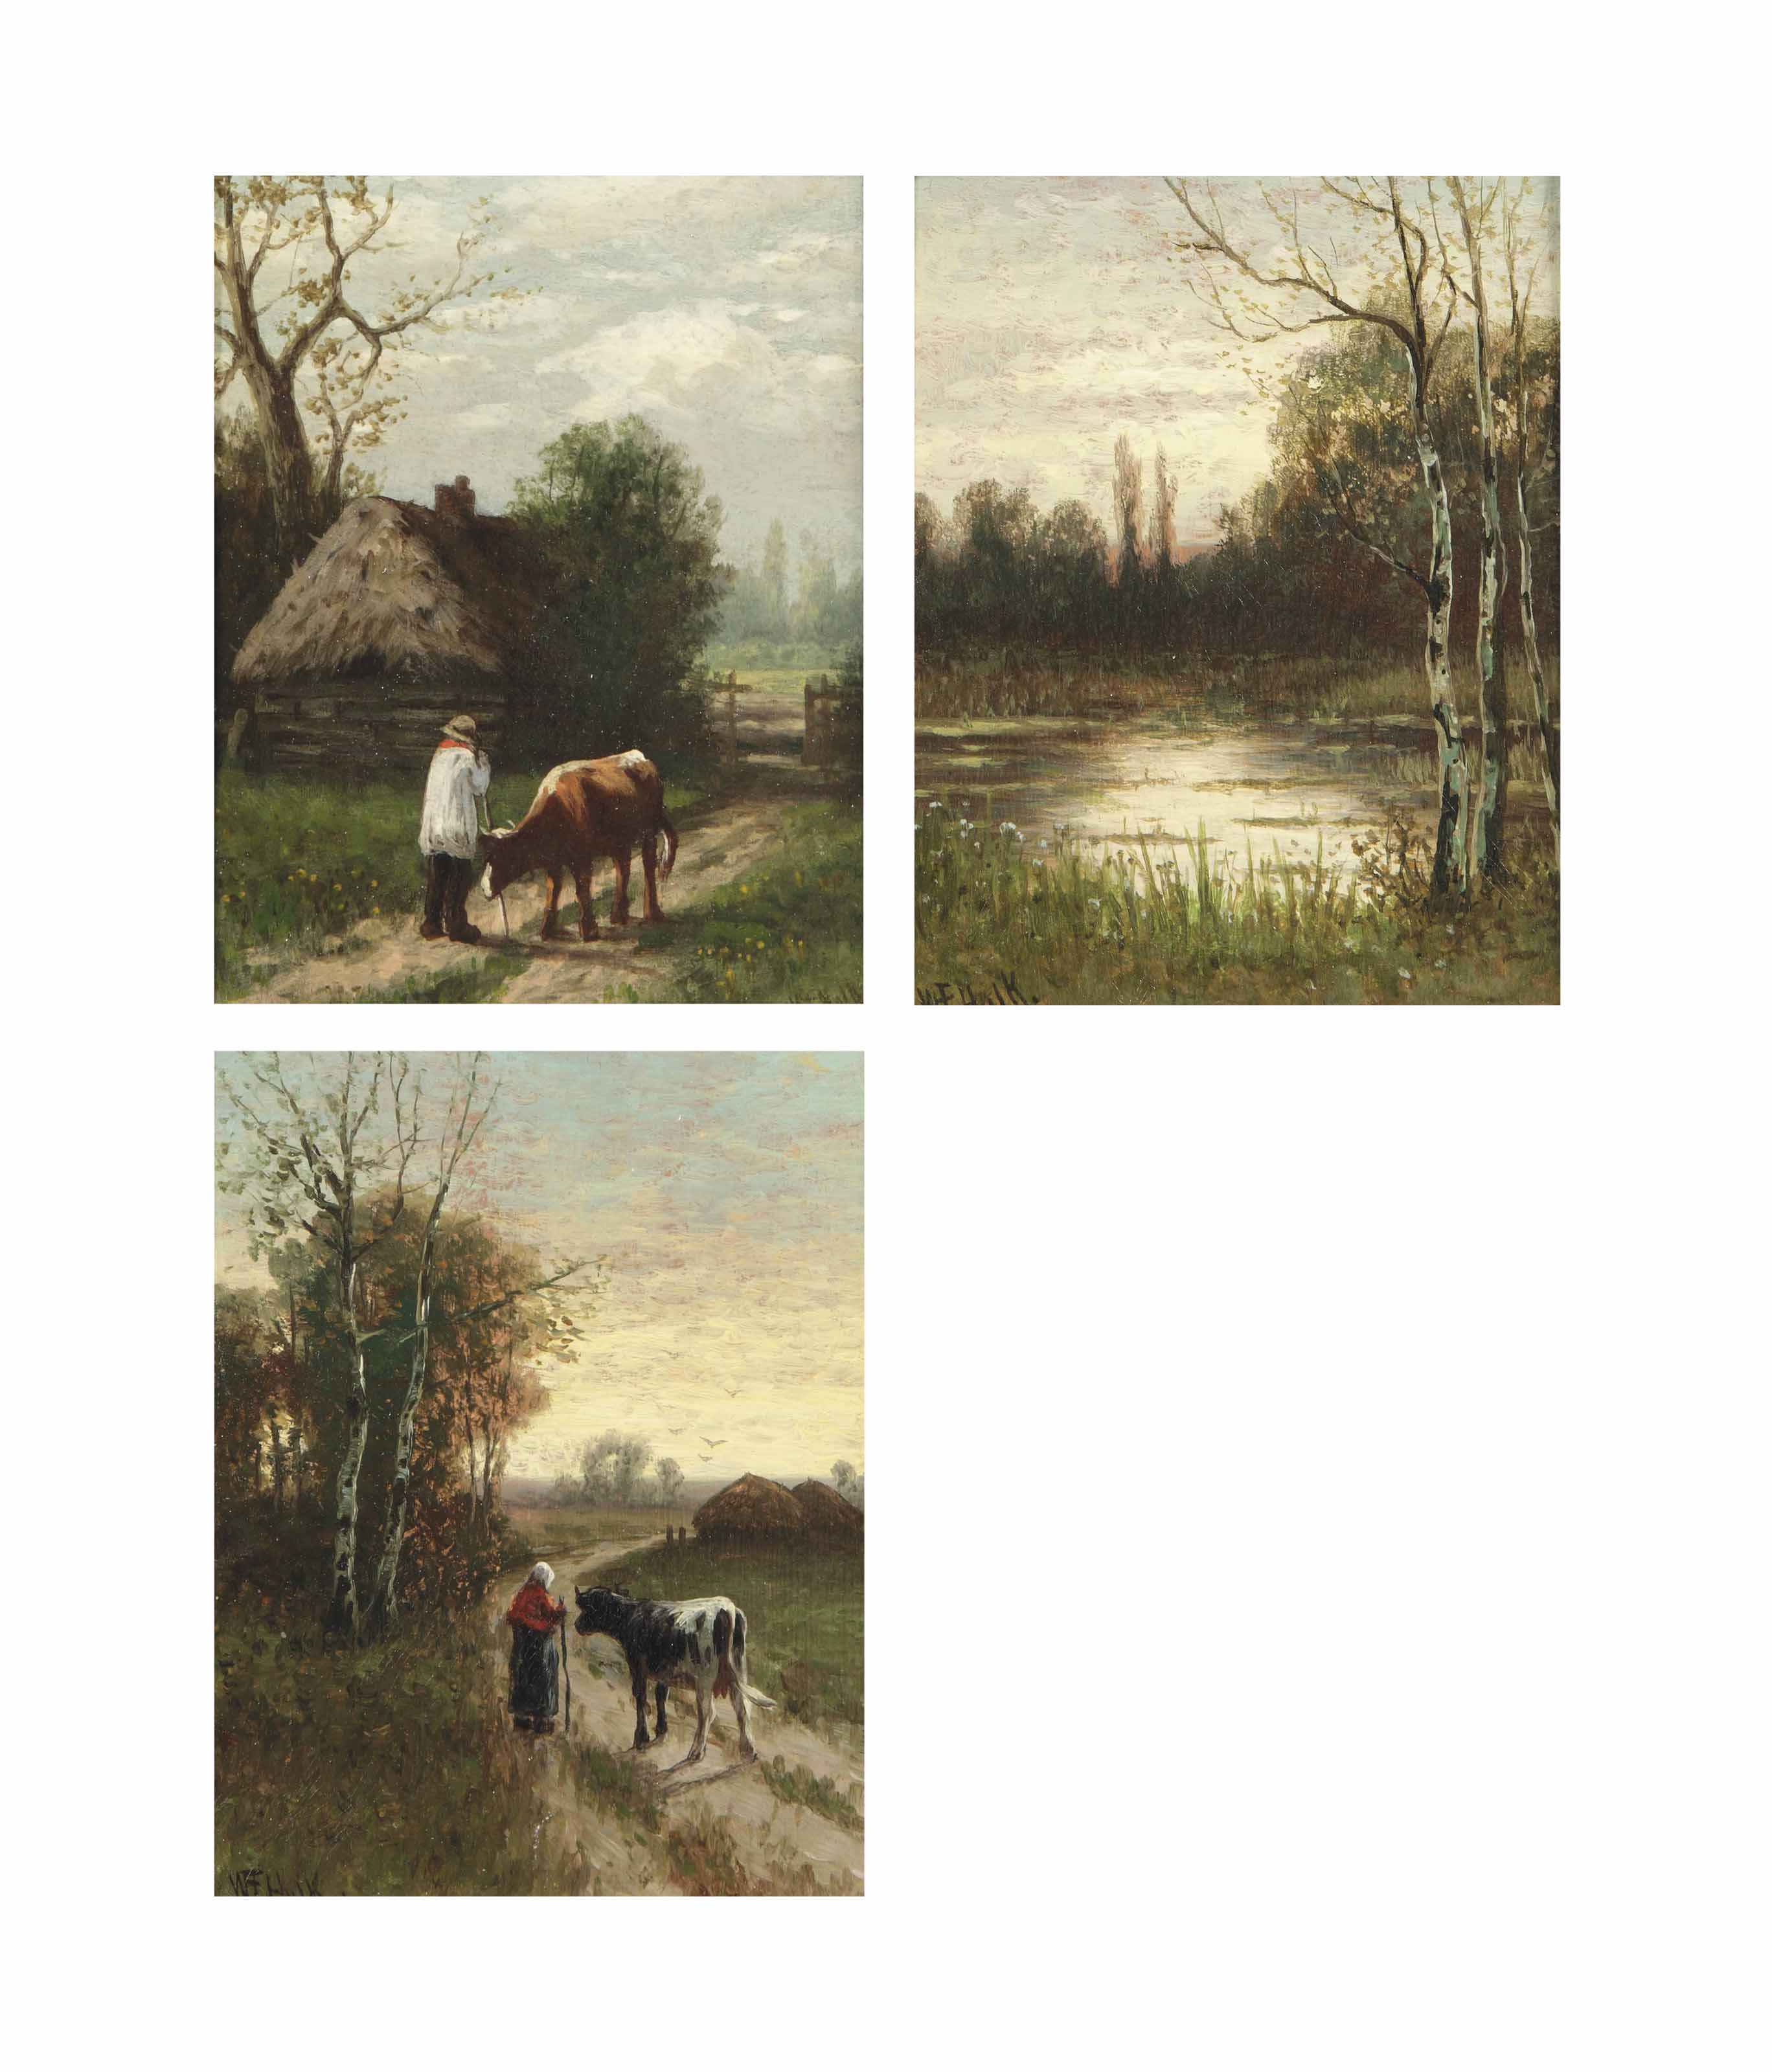 A peasant with a cow near a wooden shed; and A wooded landscape at sunset with a peasant woman and a cow; a wooded landscape with a pond